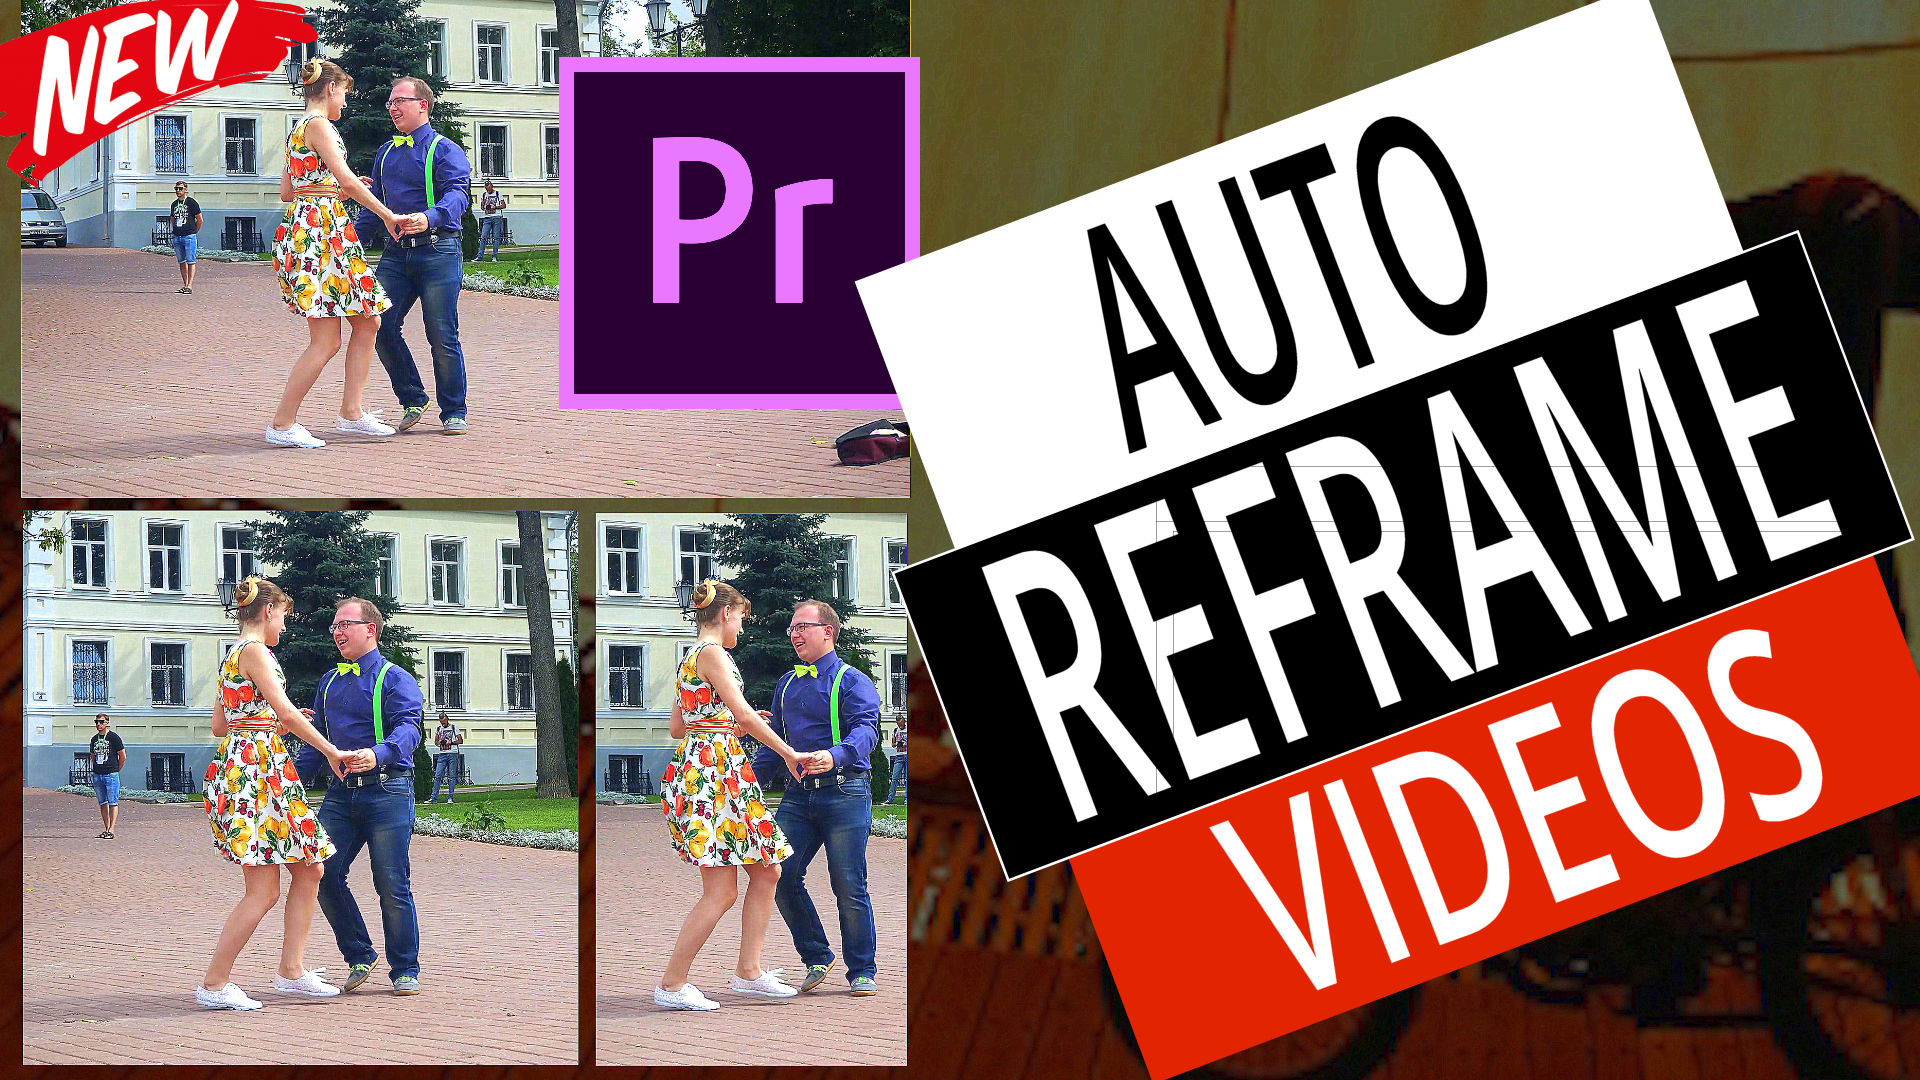 How To Auto Reframe Video in Adobe Premiere Pro 2020 - NEW Video Resizing Feature (Step by Step), alan spicer,how to auto reframe videos in adobe premiere pro,how to auto reframe videos,auto reframe in adobe premiere pro,auto reframe premiere pro,adobe premiere pro auto reframe,auto reframe,premiere pro,premiere pro auto reframe,premiere pro 2020,video resizing,vertical video,adobe premiere pro 2020,premiere pro tutorial,new features,adobe premiere pro updates,reframe adobe premiere,how to reframe footage adobe premiere,adobe premiere auto reframe,adobe